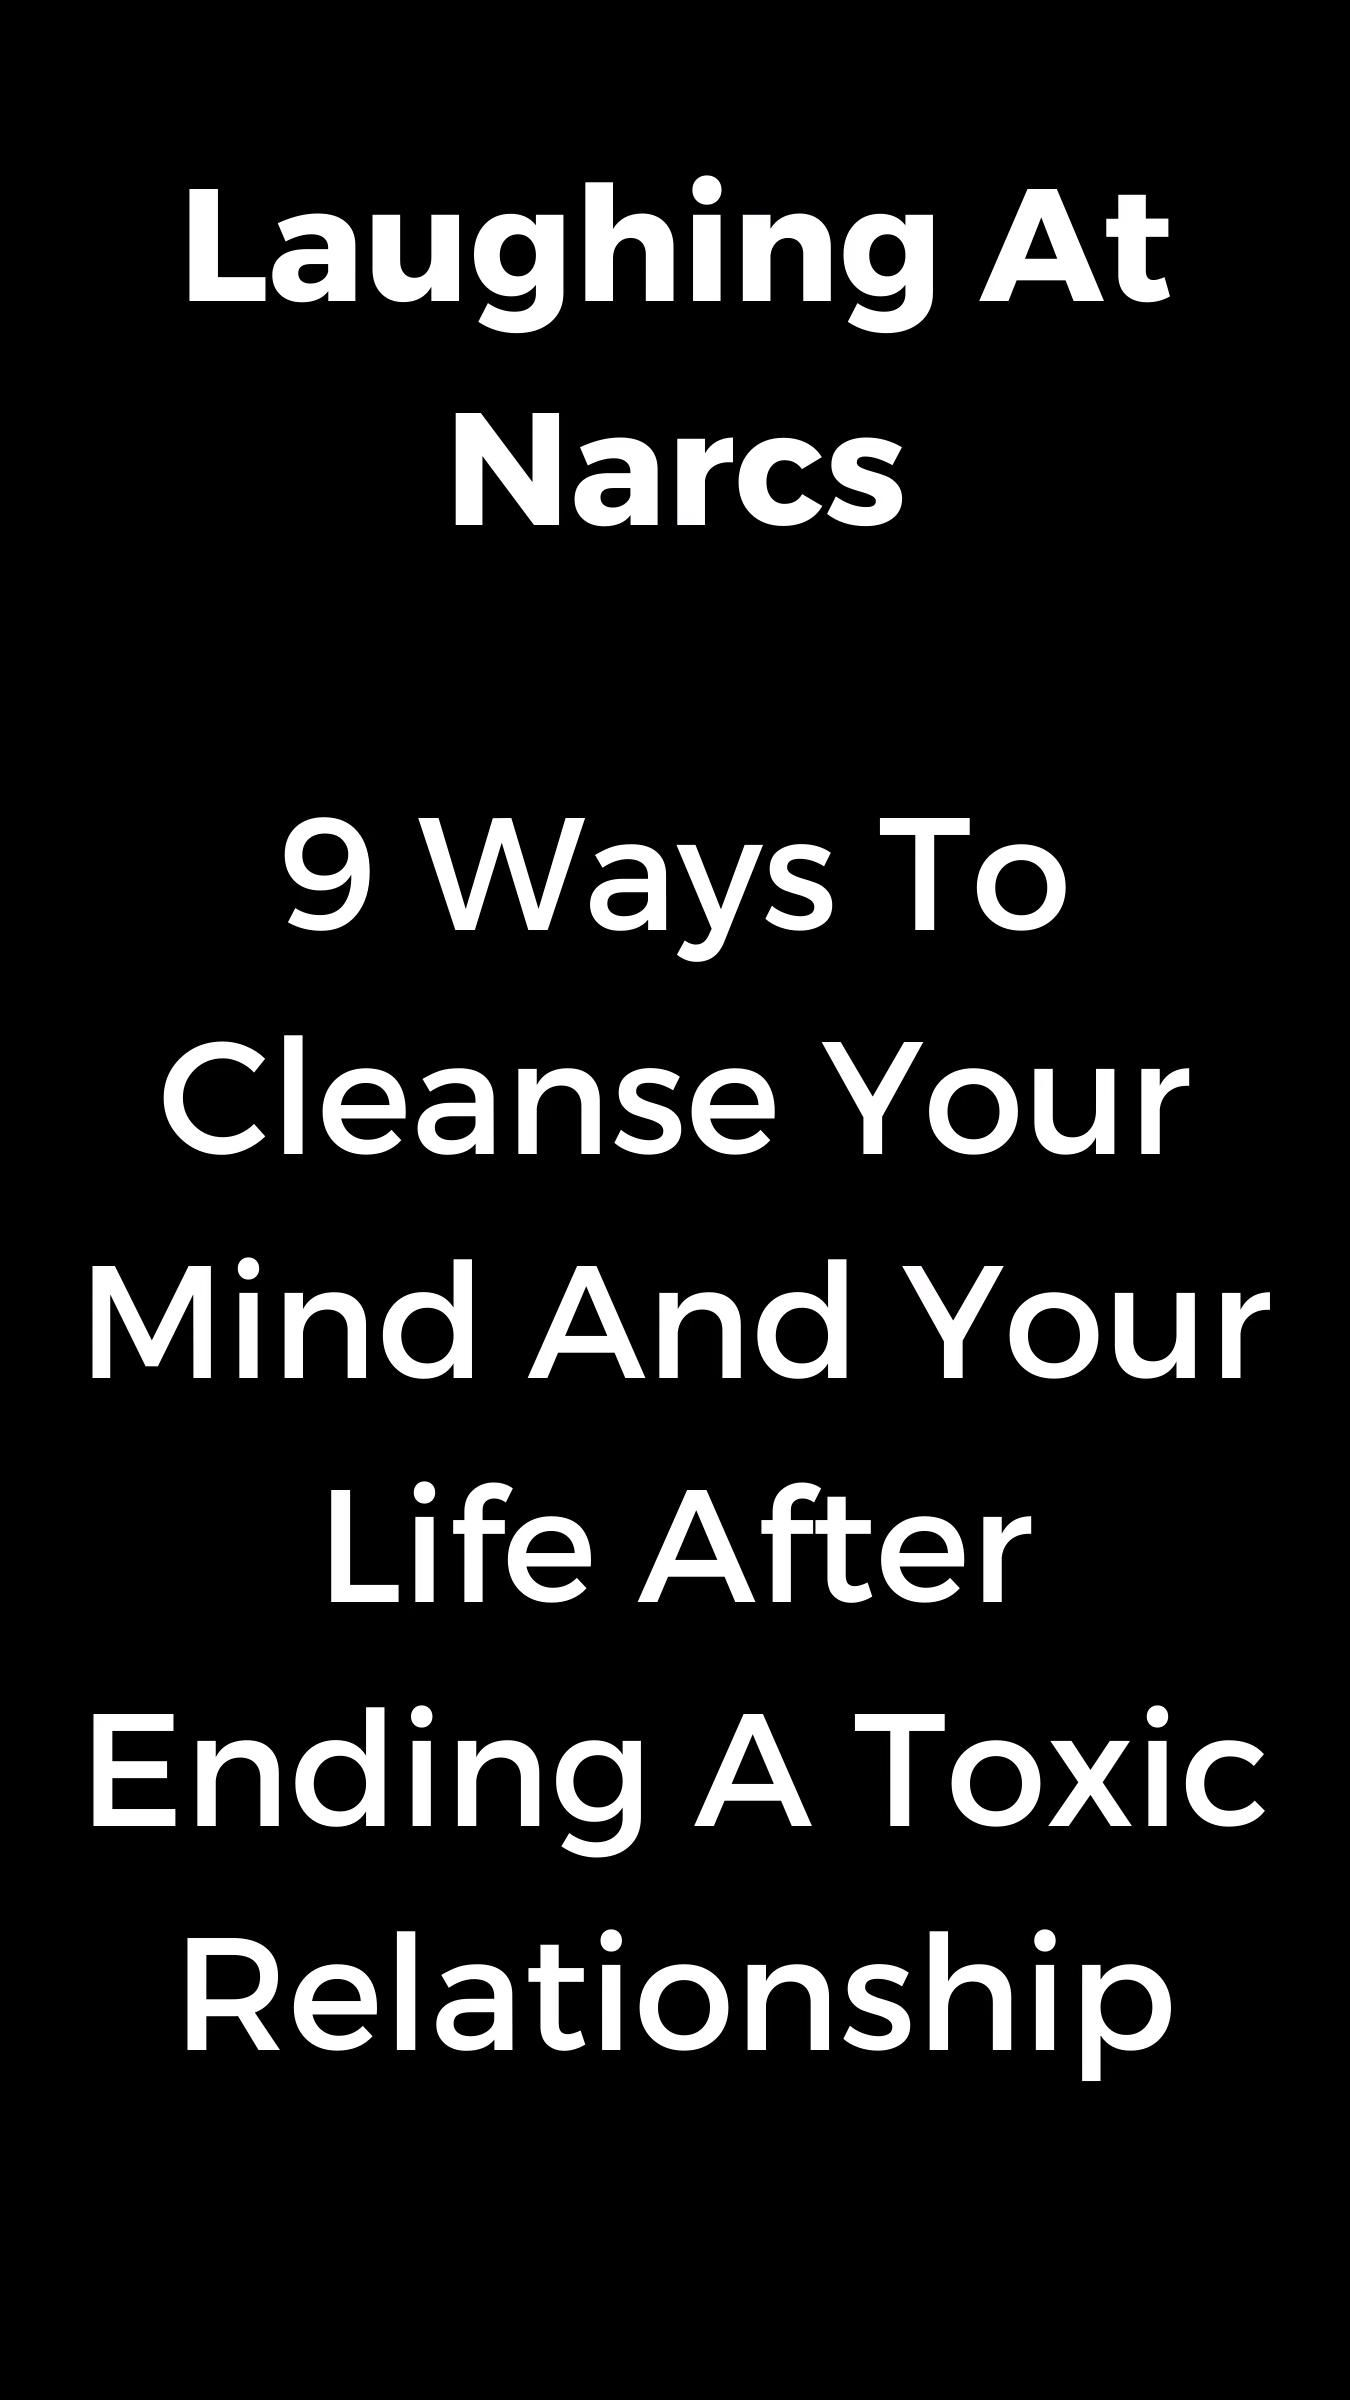 Ways To Cleanse Your Spirit After Leaving A Toxic Relationship